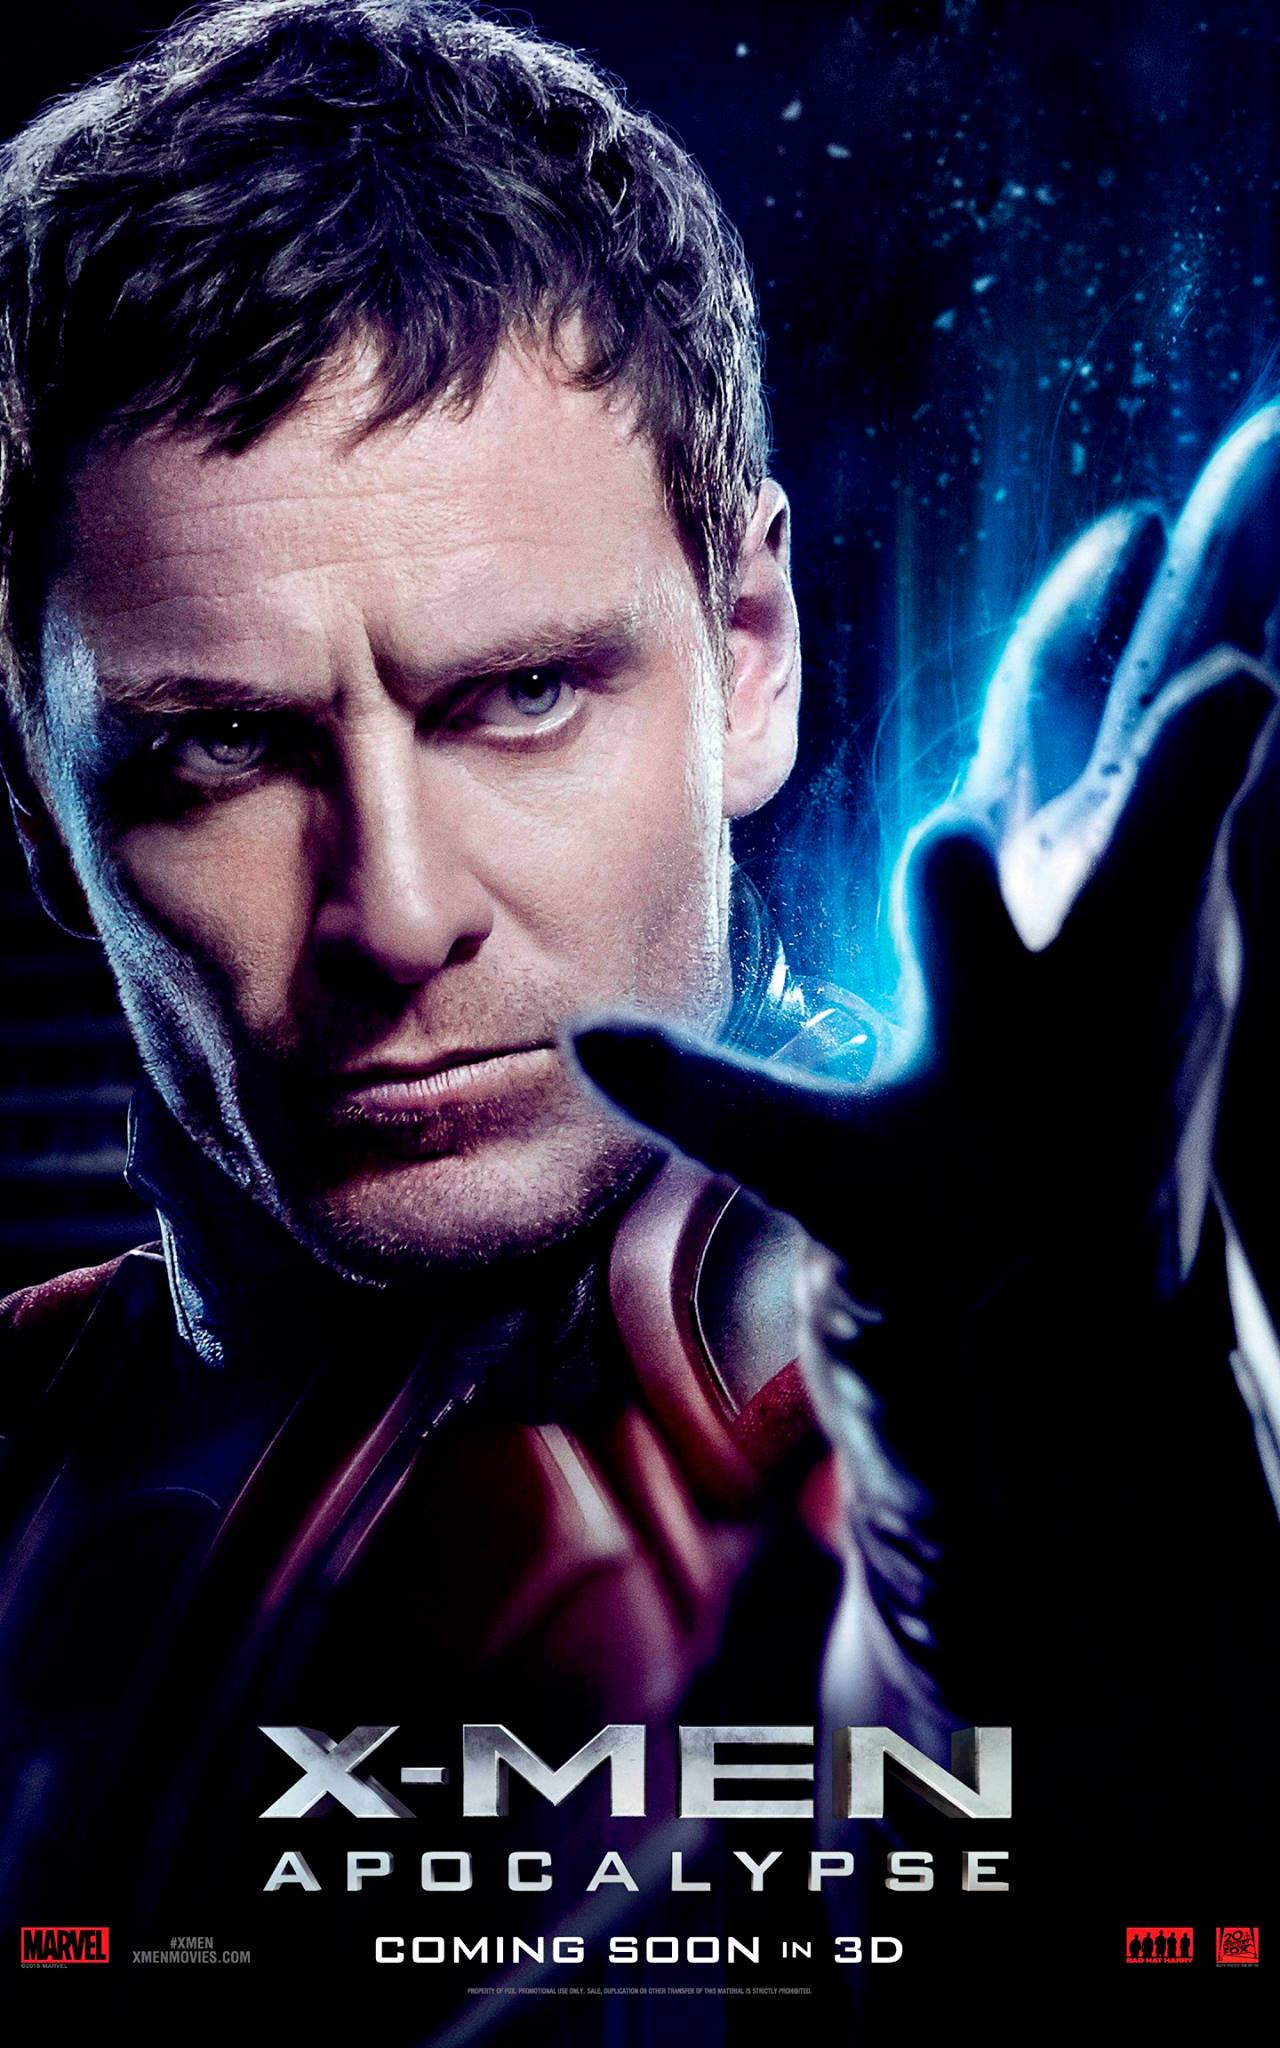 Magneto character poster